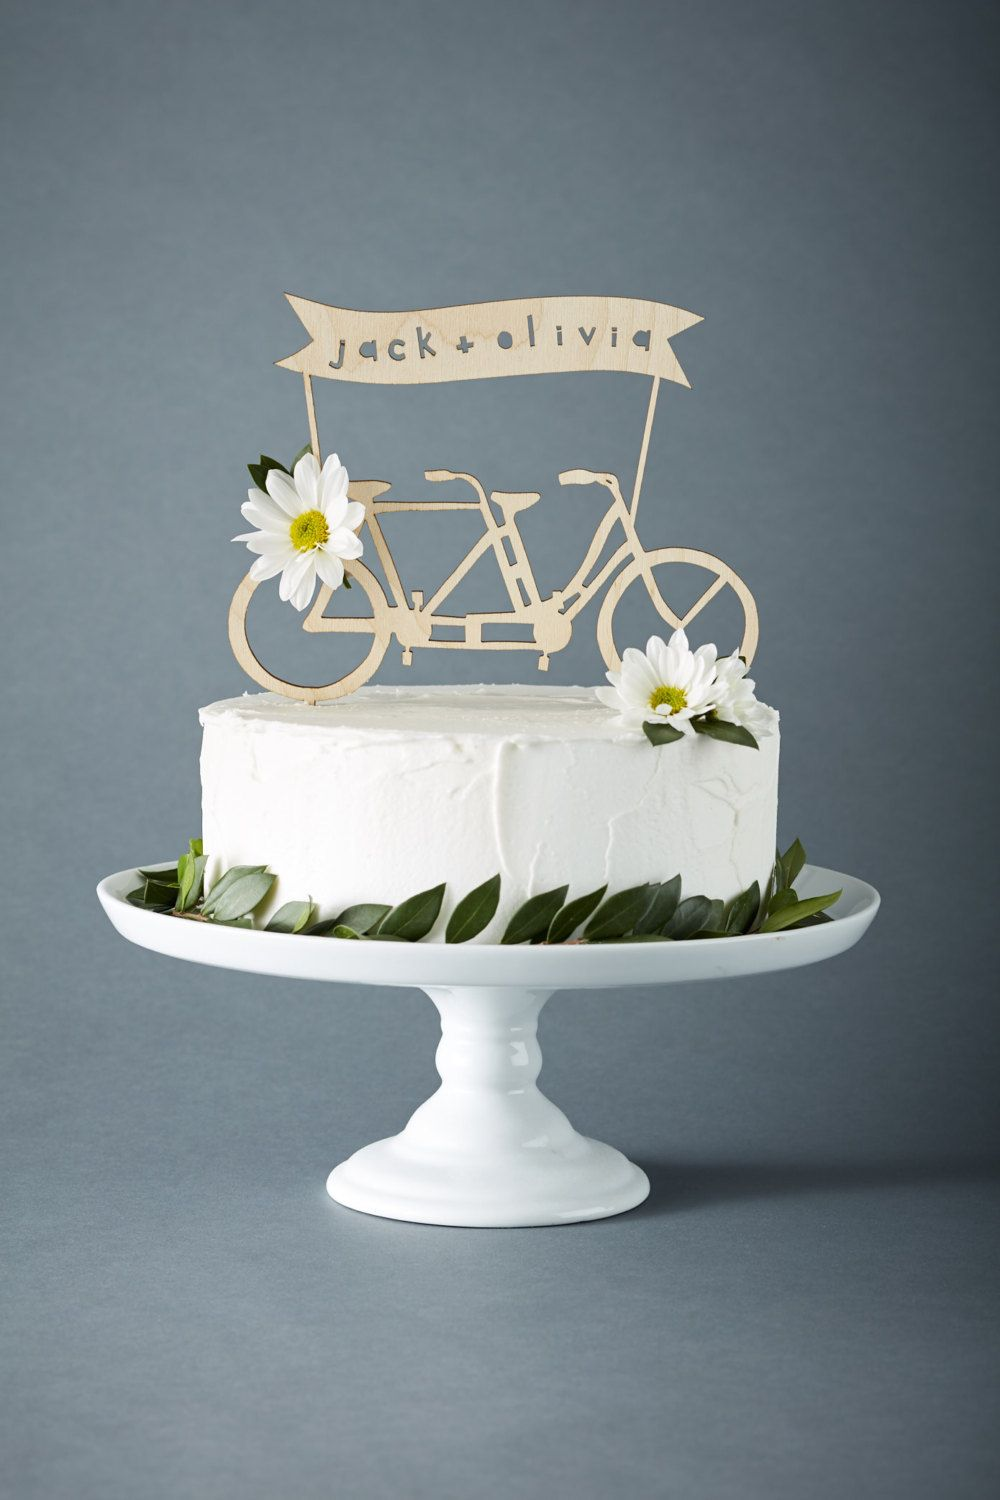 Your Small Wedding Cake Will Make A Statement With This Bicycle Topper Custom Tandem Bike